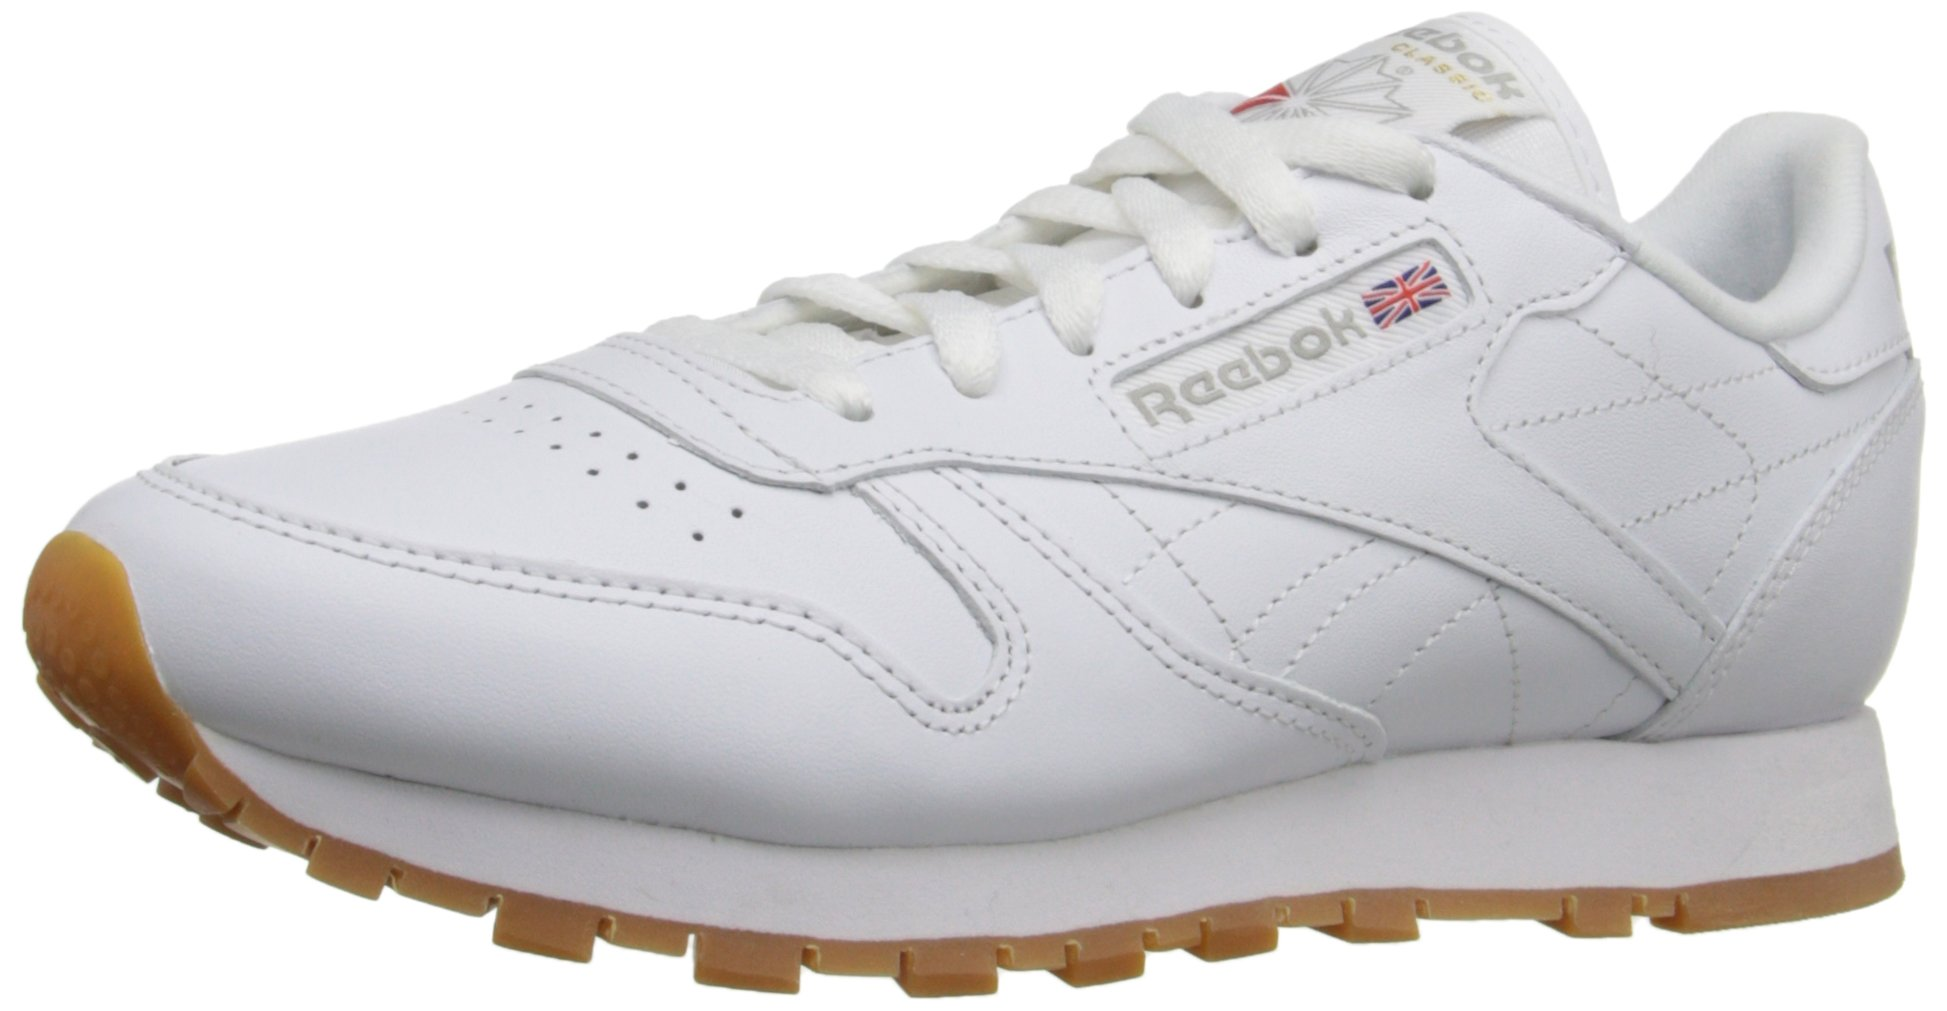 Reebok Women's CL Lthr Sneaker, Us-White/Gum, 9 M US